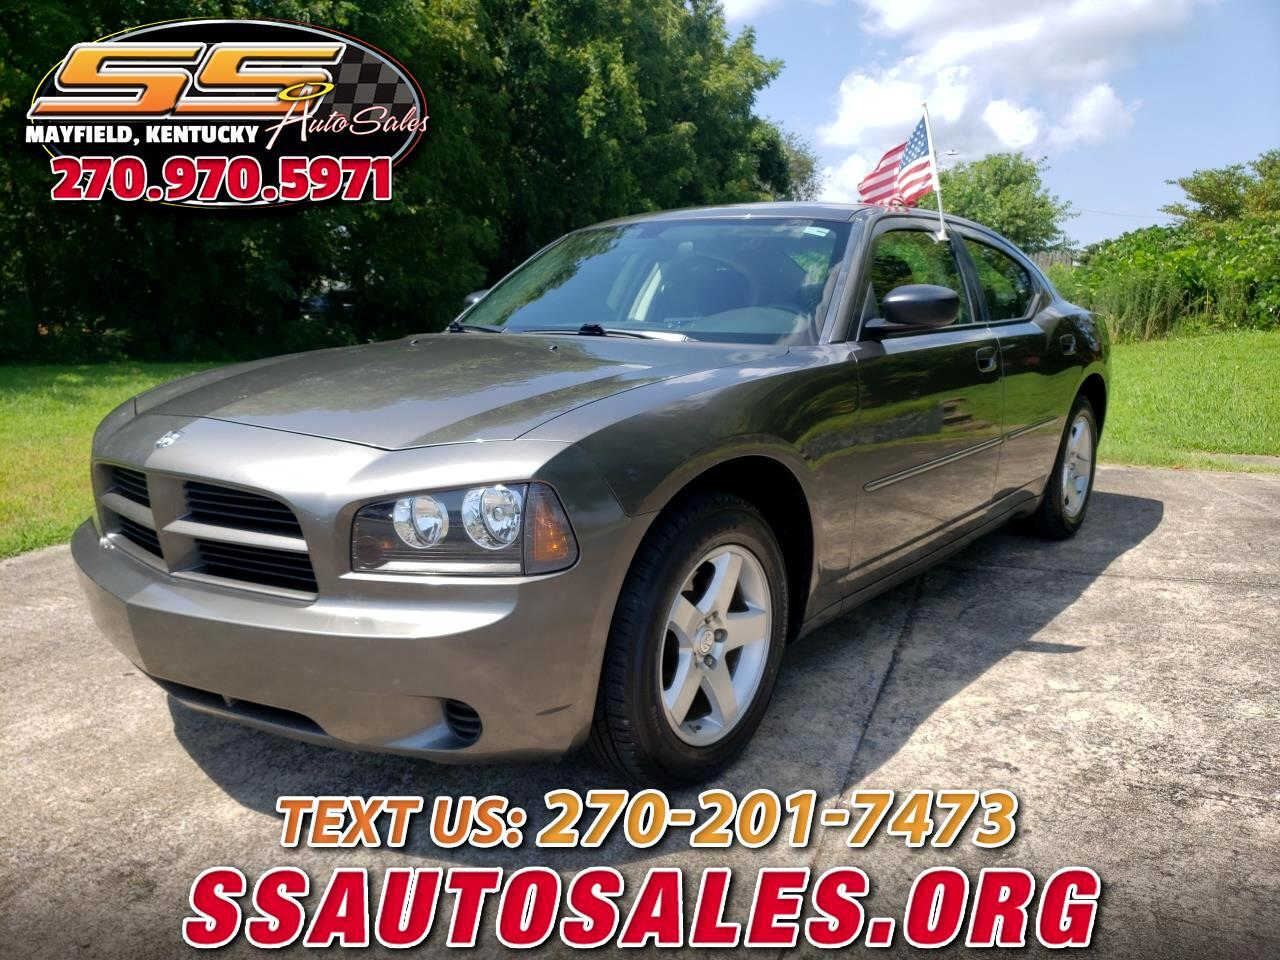 2009 Dodge Charger 4dr Sdn SE RWD